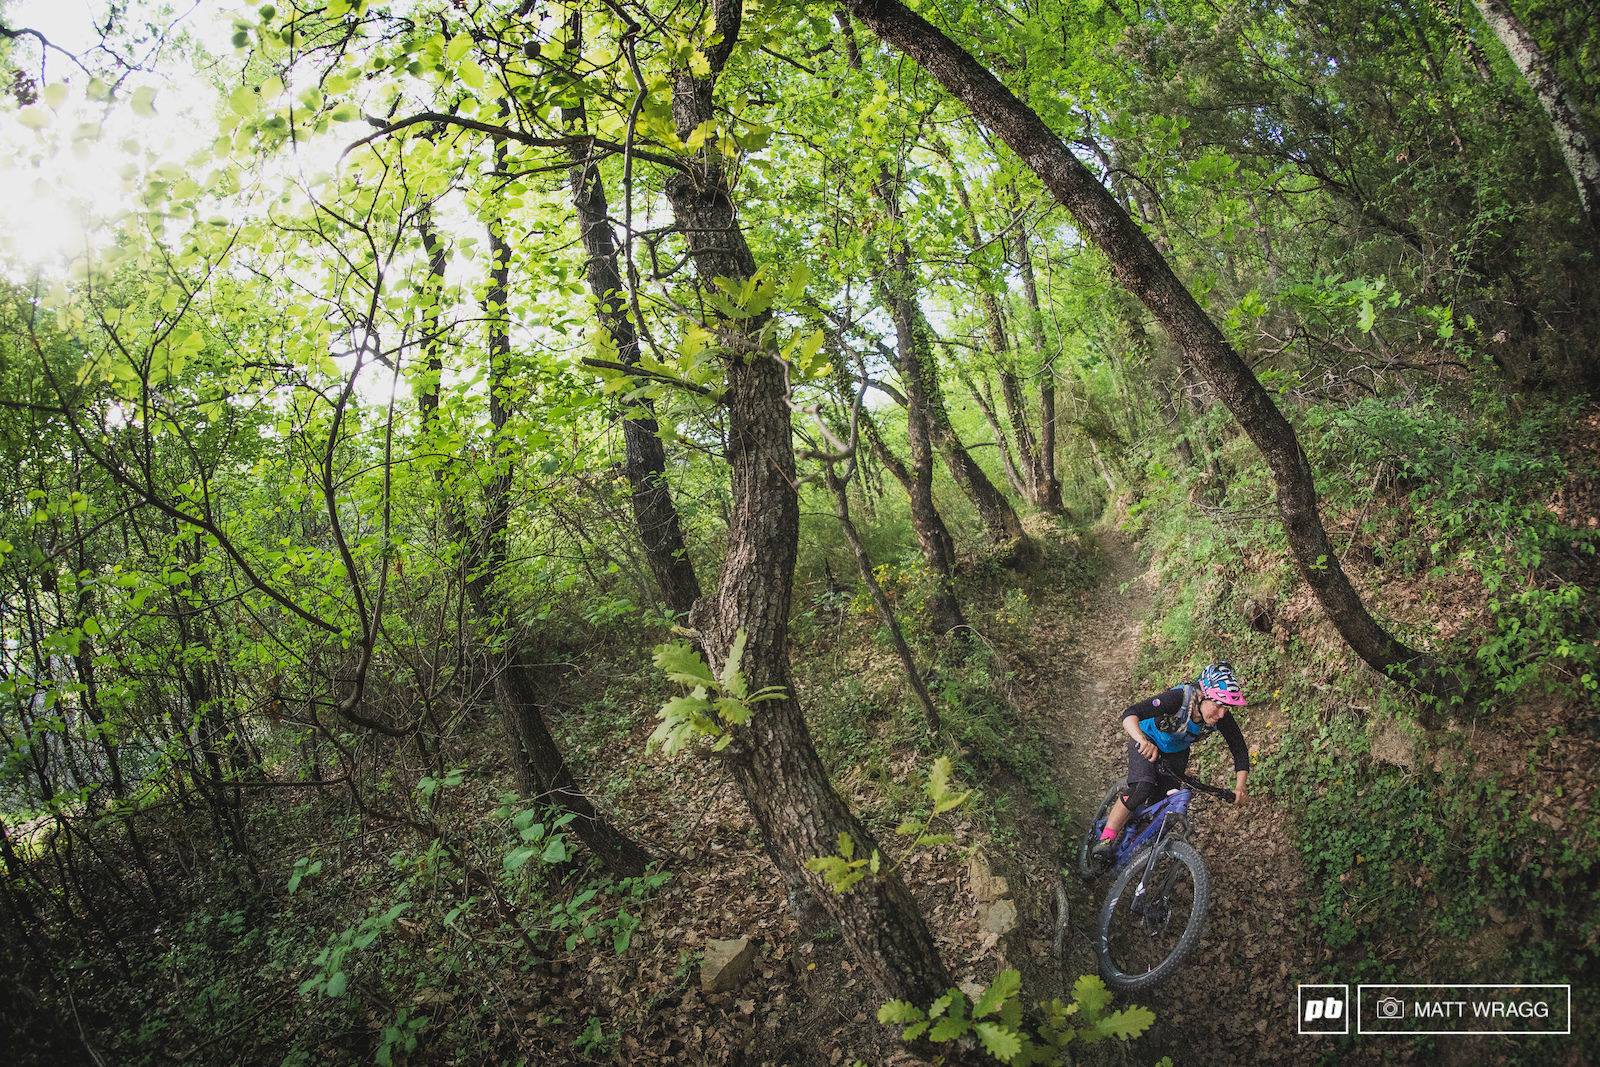 Bramafam is one of my favourite trails on that side of the valley - the lower part is smooth fast and flowing - perfect for when your eyes are going a but funny after thirteen hours on the go.